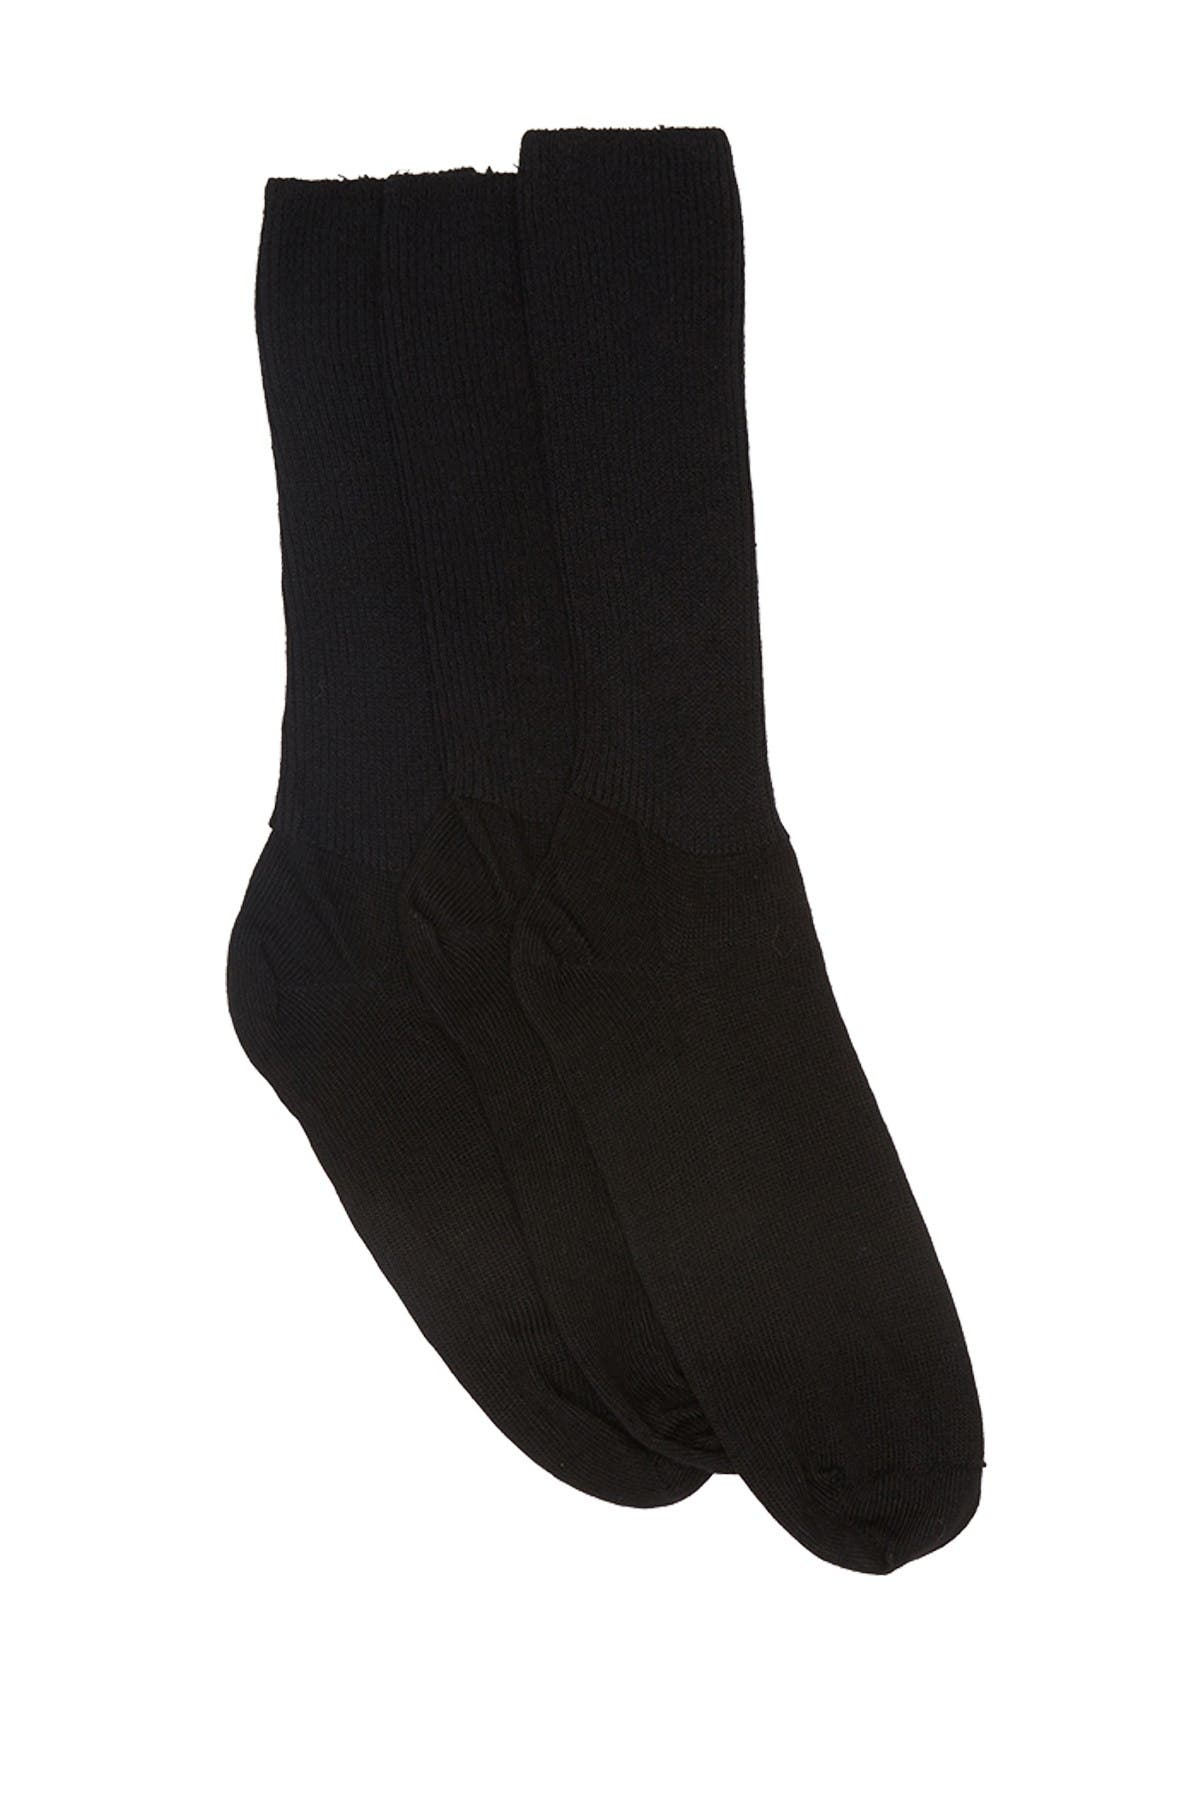 Image of WIGWAM Breeze Crew Socks - Pack of 3